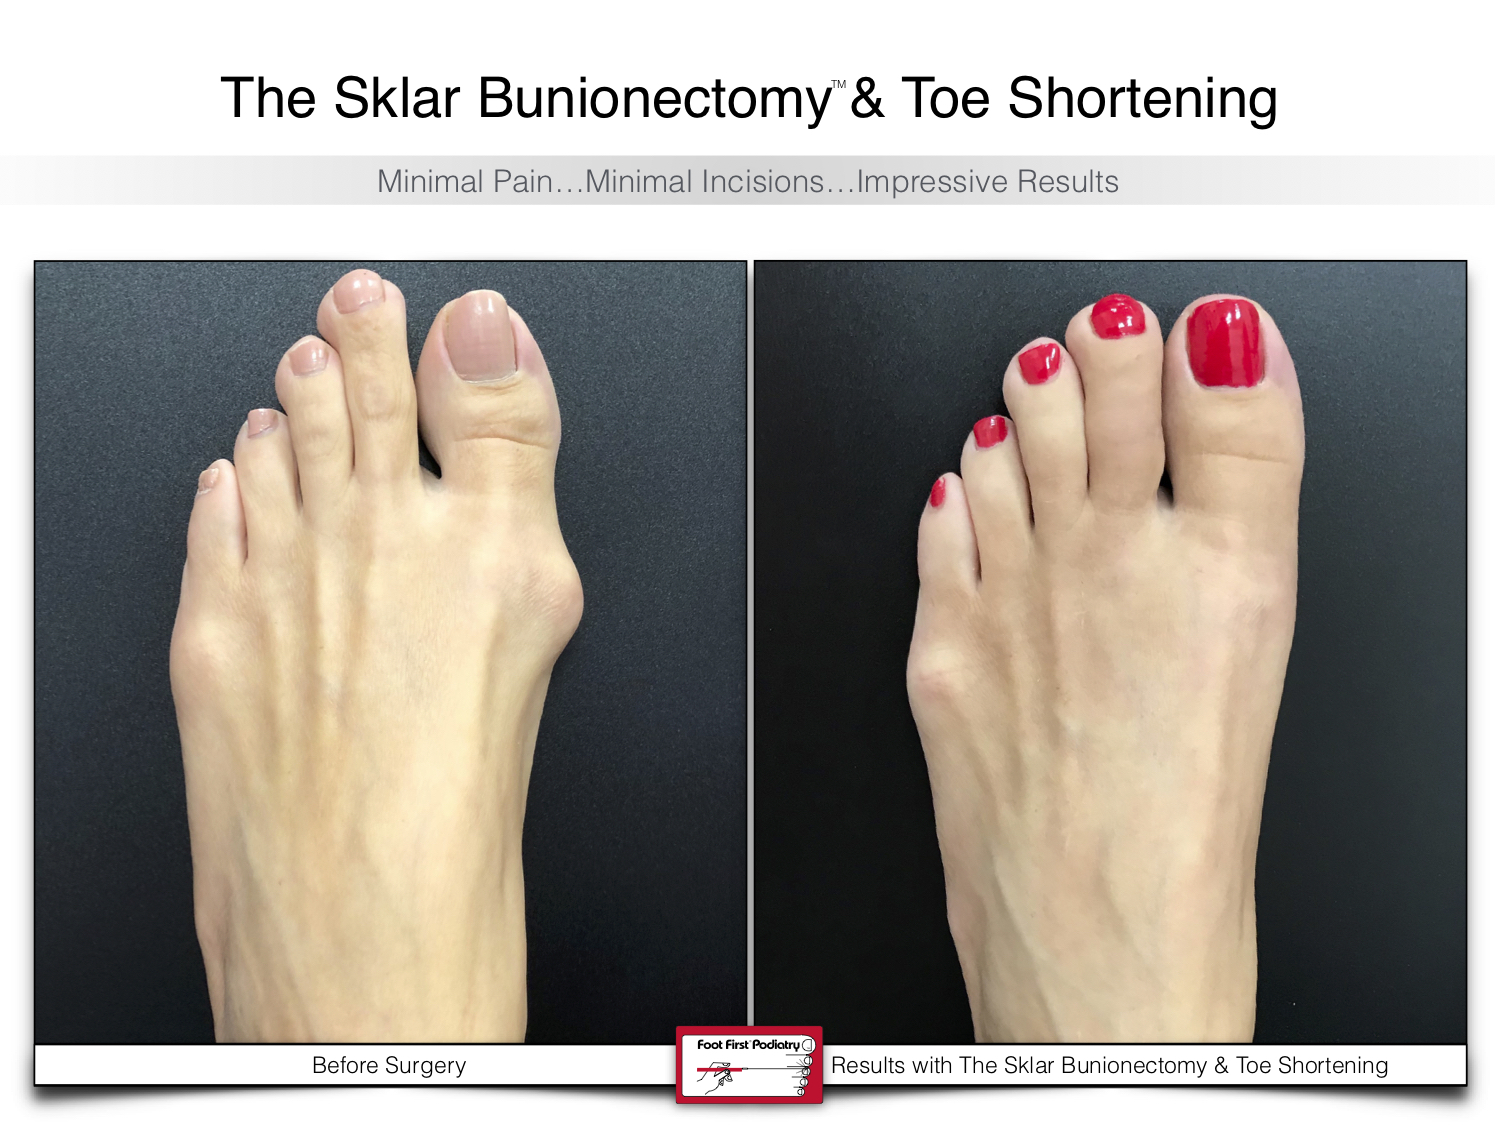 www.footfirst.com | Cosmetic Bunion and Toe Shortening Surgery 126.jpg